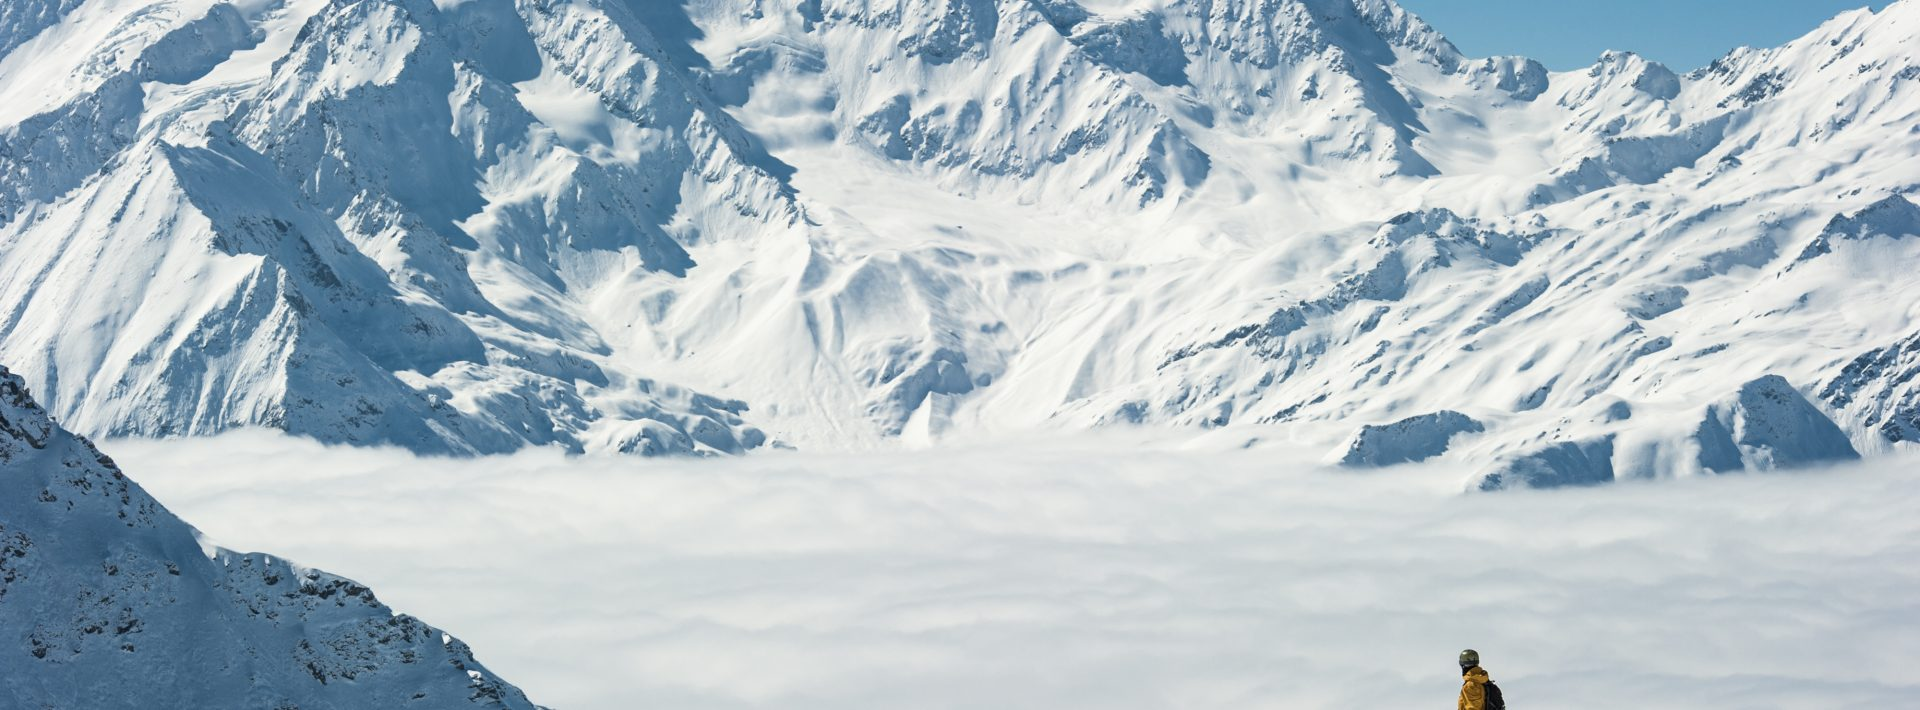 André Sommer stands above the clouds on a powder day in Verbier, Switzerland